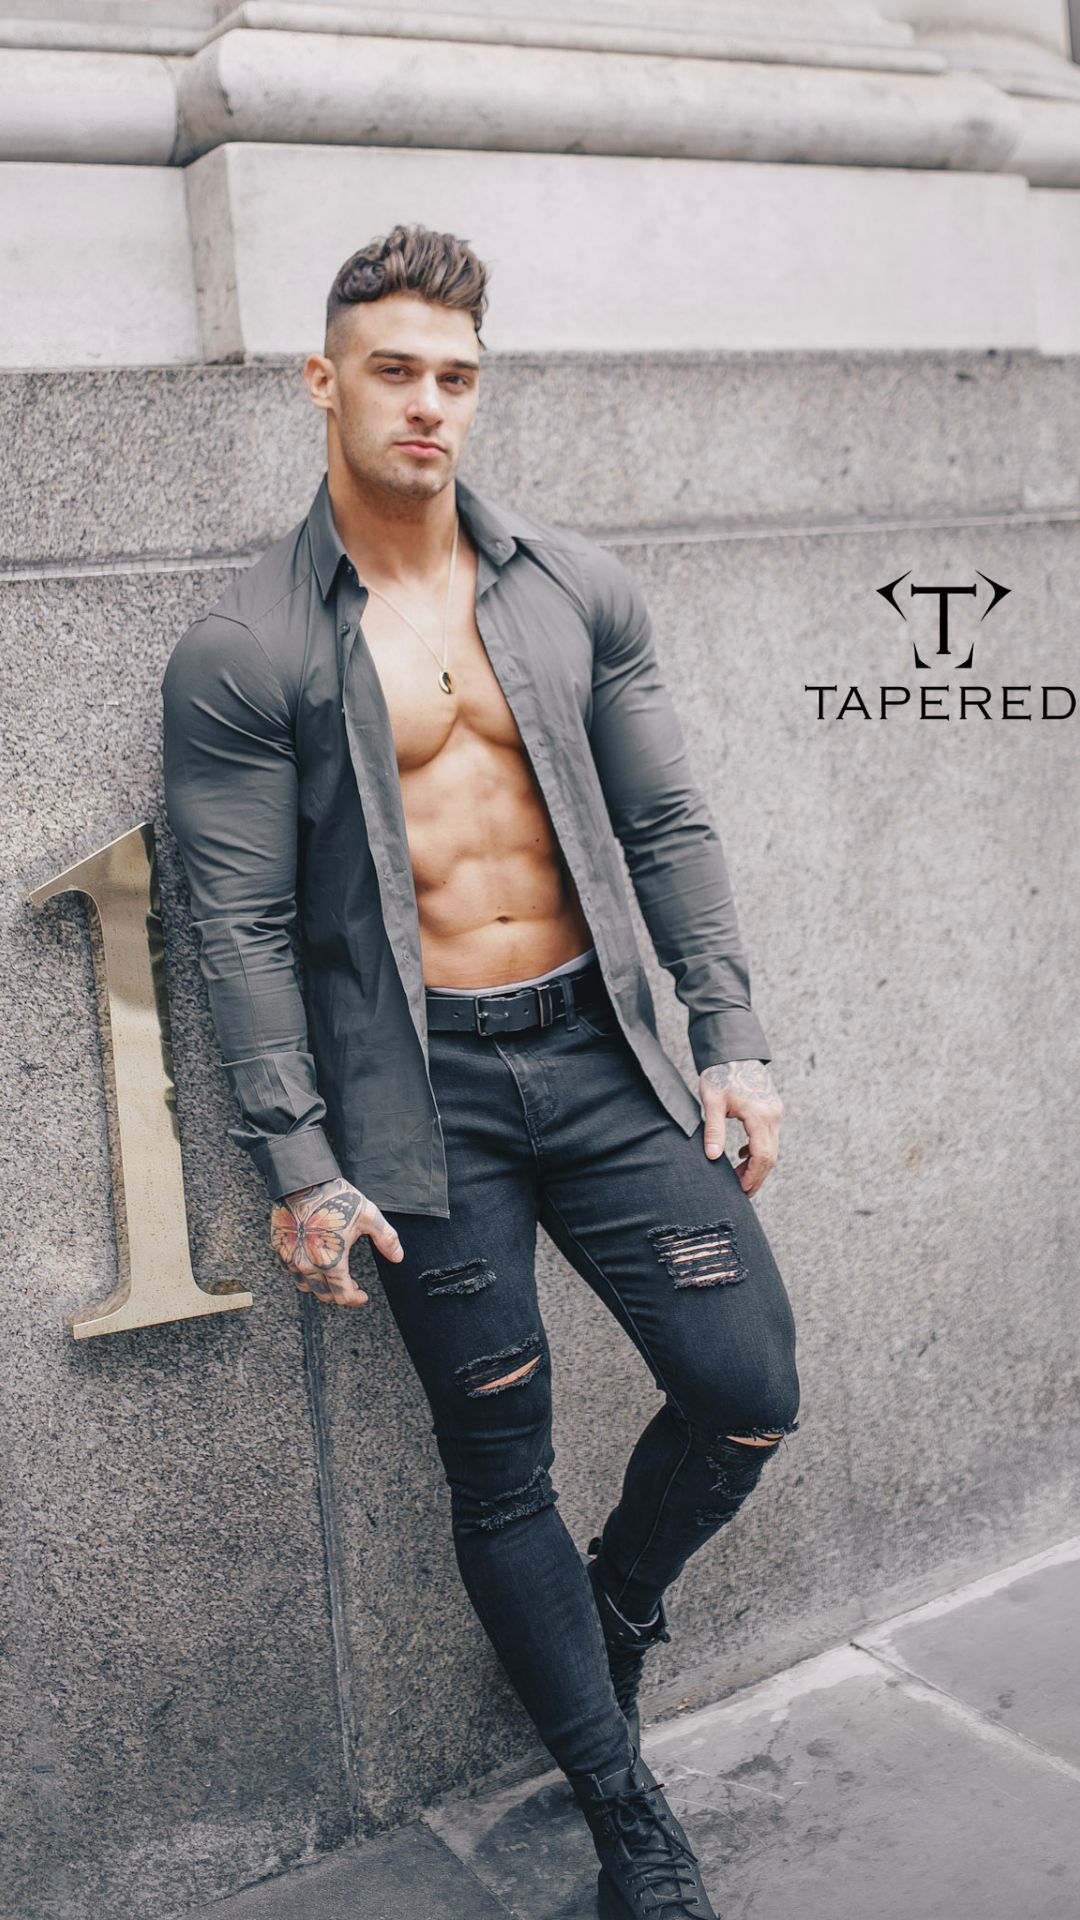 Olive Tapered Fit Shirt In 2020 Mens Outfits Workout Shirts